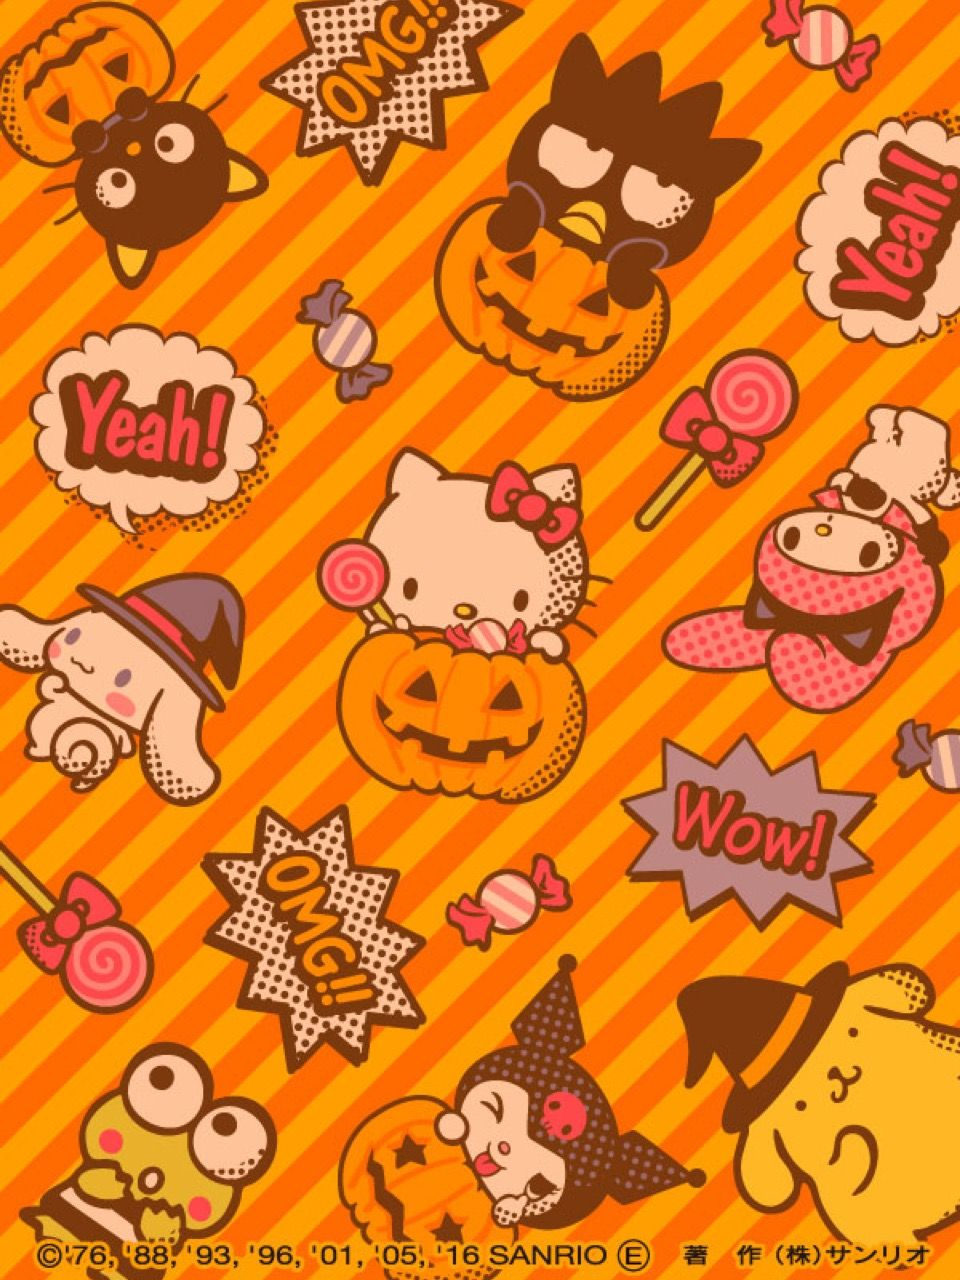 From Hello Kitty Collage With Images Hello Kitty Halloween Wallpaper Hello Kitty Backgrounds Hello Kitty Pictures